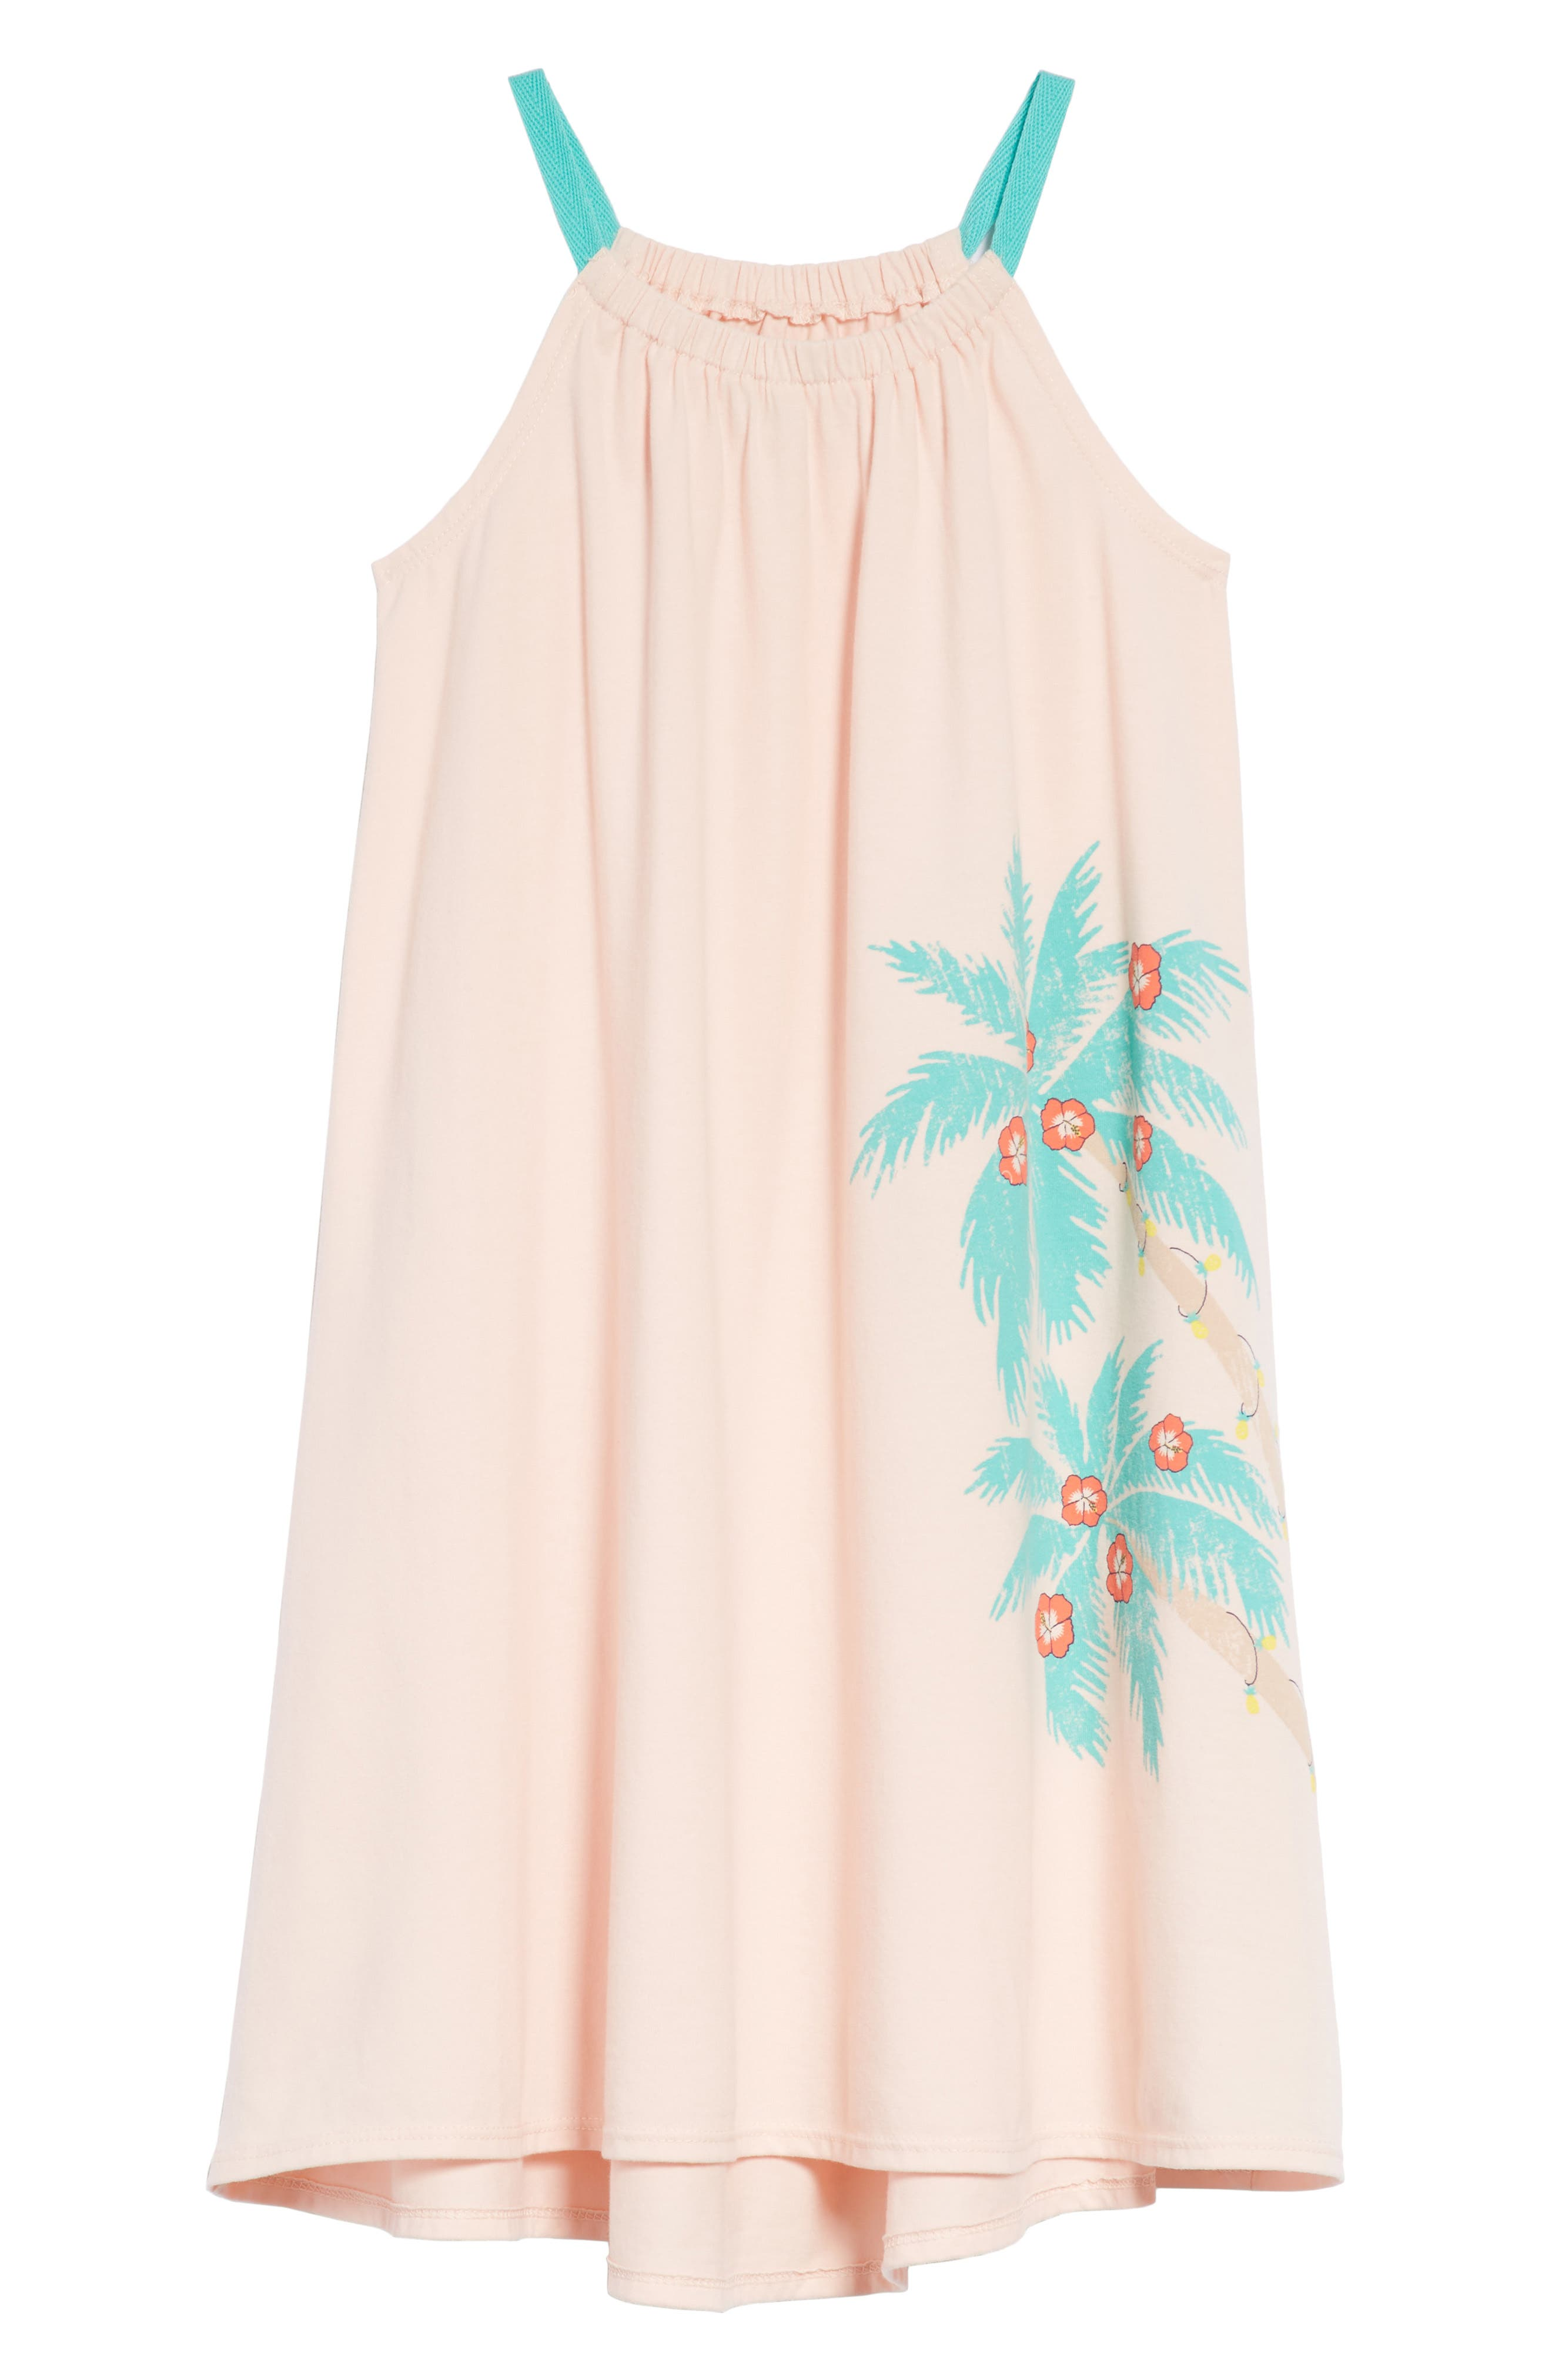 Palm Trees Graphic Swing Dress,                             Main thumbnail 1, color,                             680